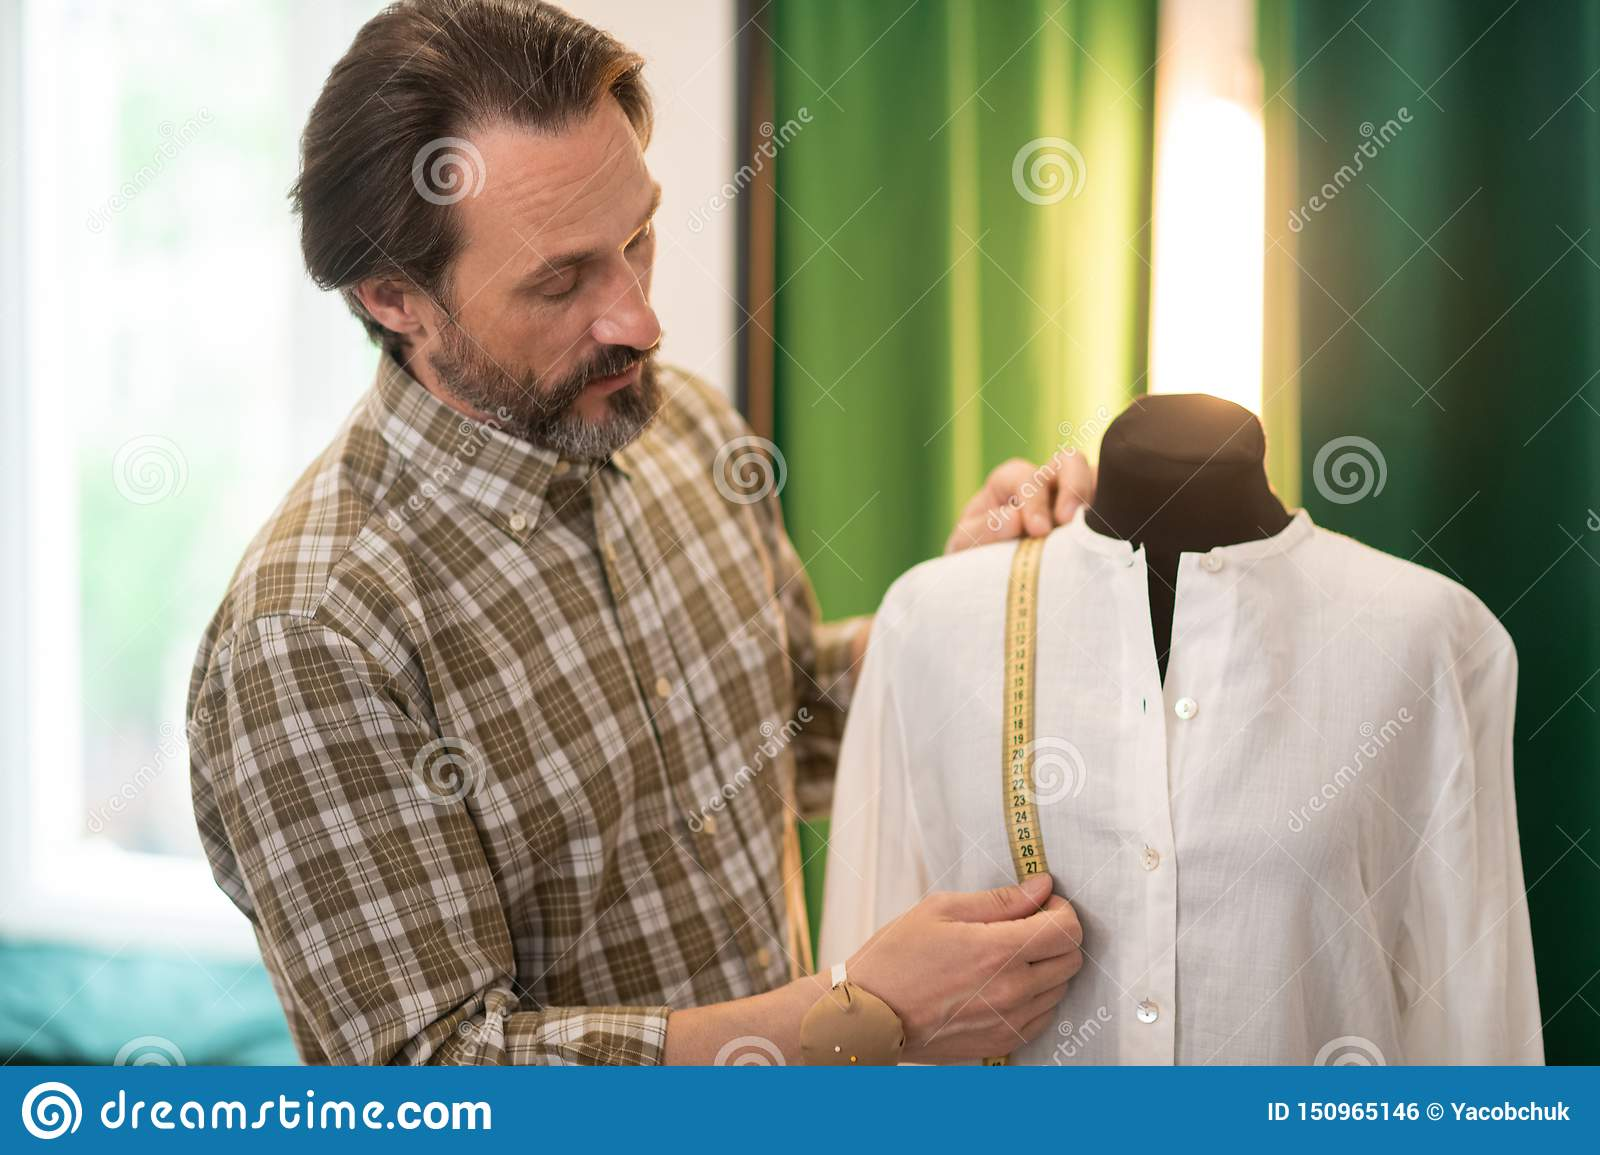 Focused bearded designer getting measurements of a finished white shirt